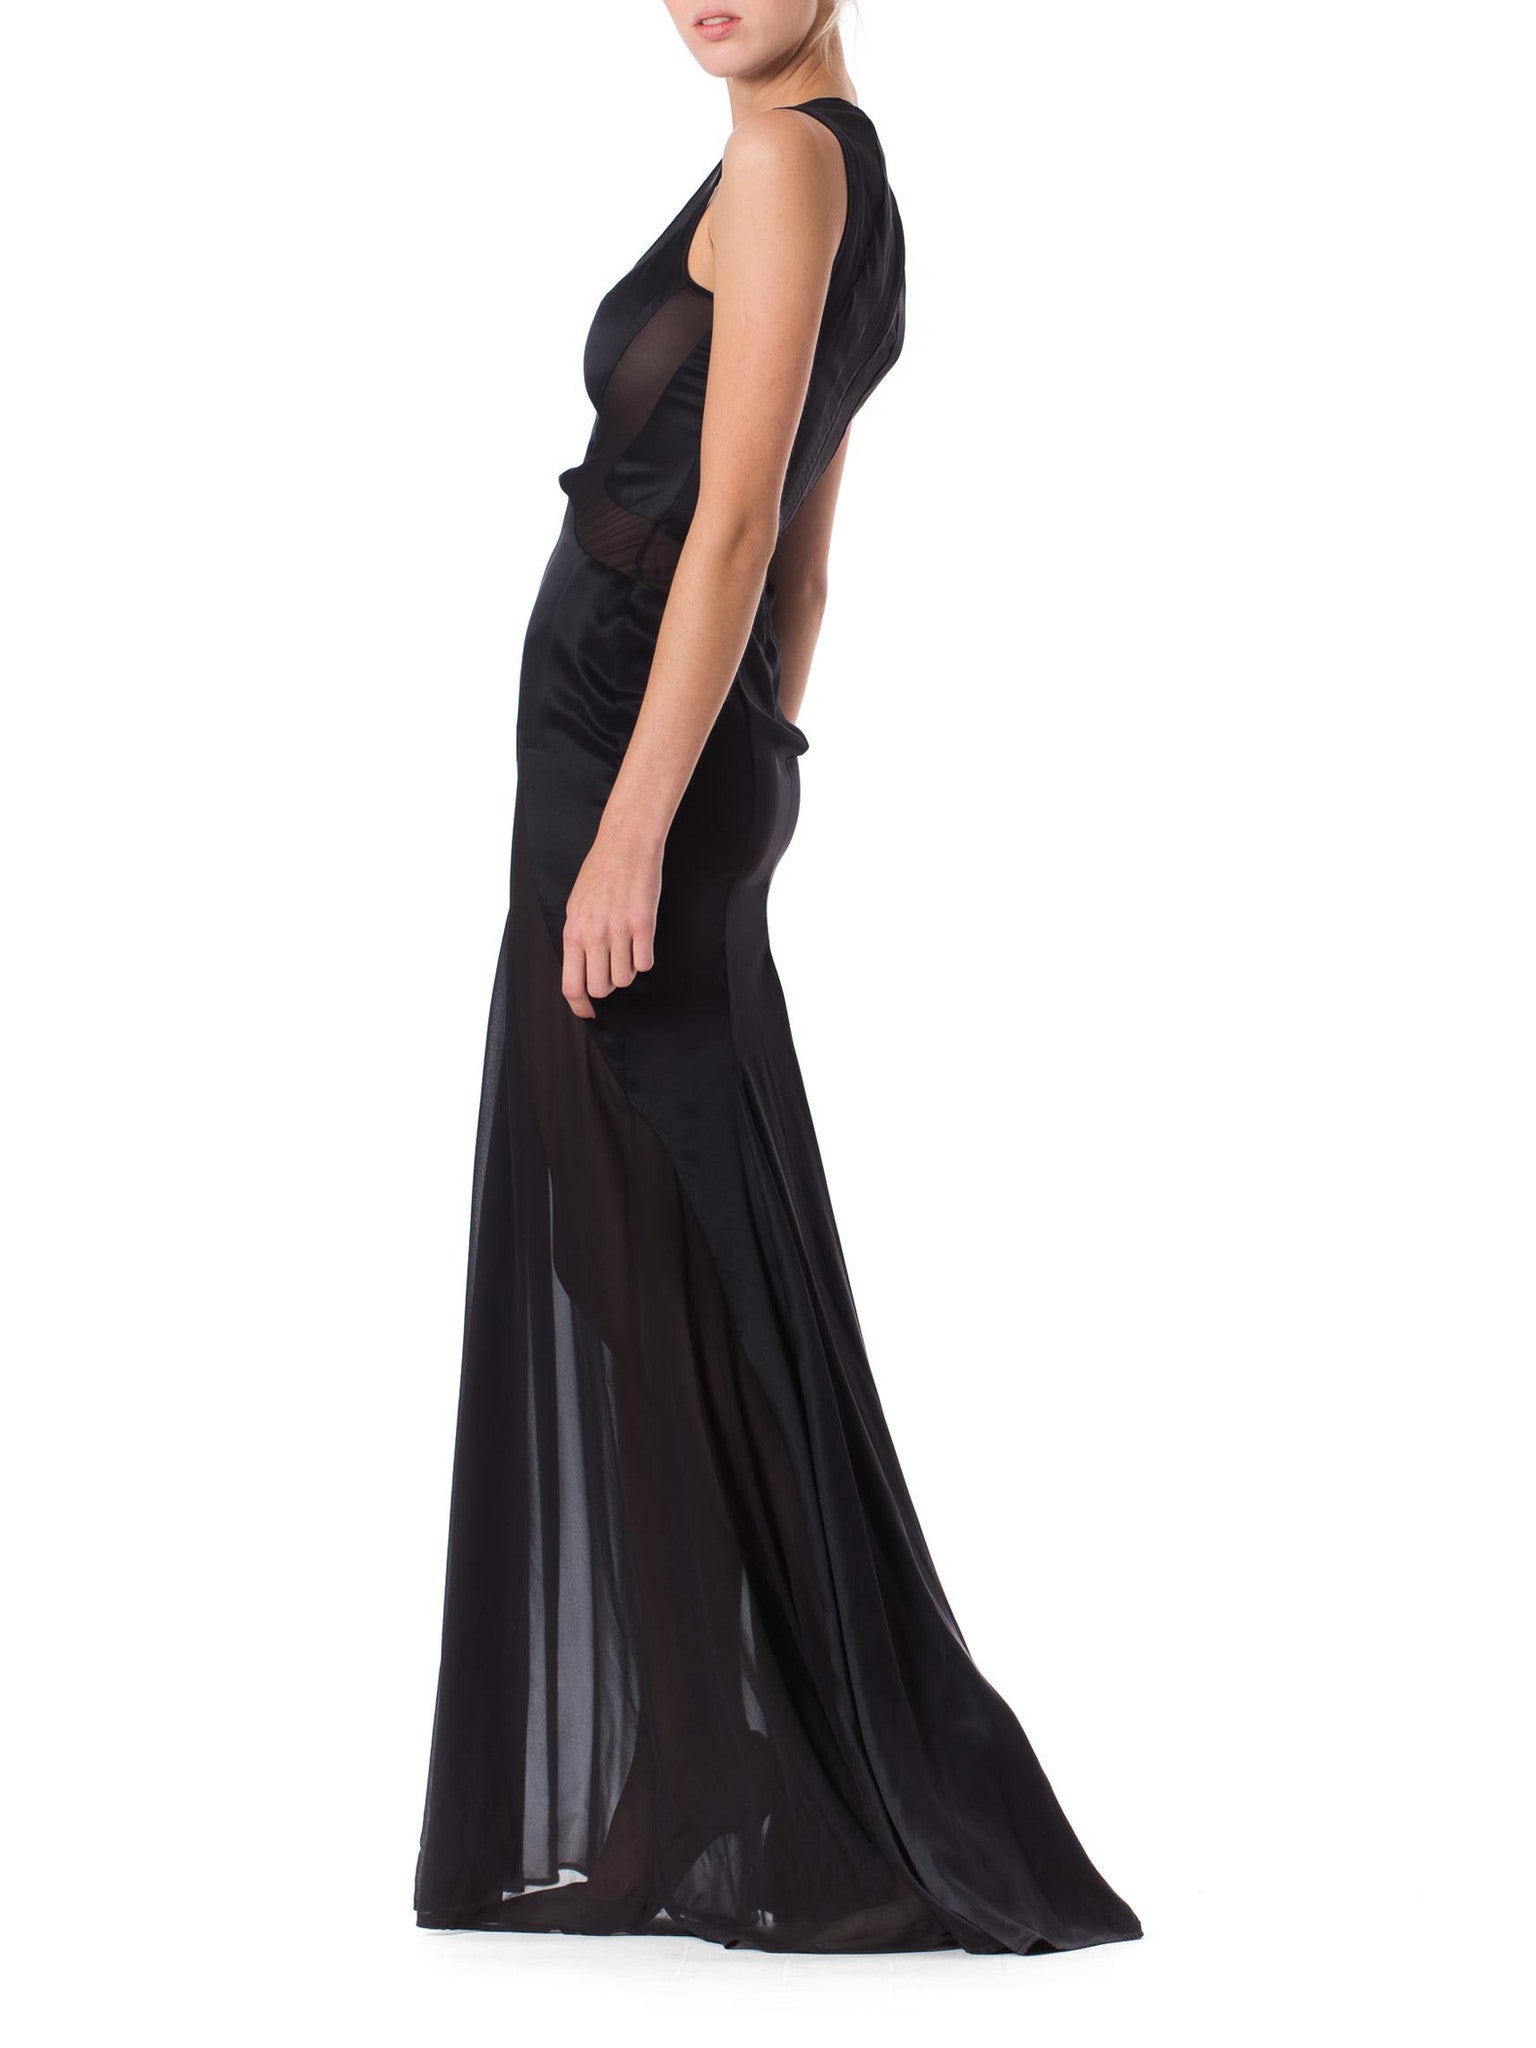 2000S VERSACE Black Silk Charmeuse Gown With Sheer Chiffon Peek-A-Boo Panels